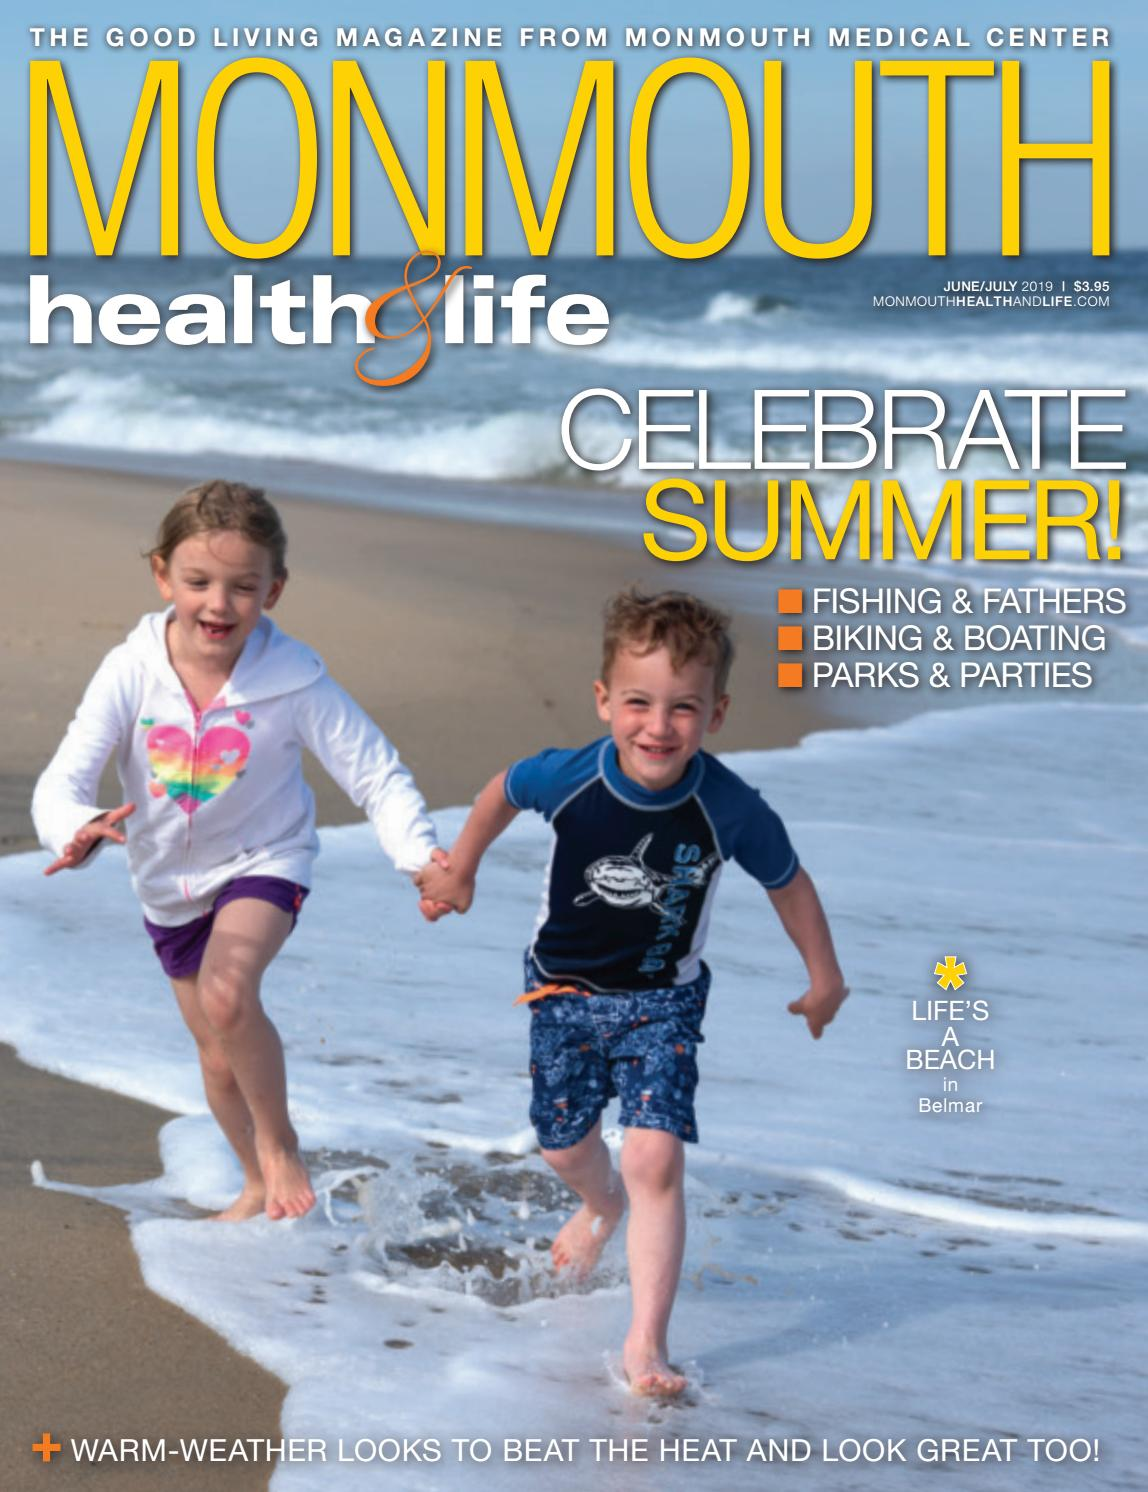 Monmouth Health & Life: June/July 2019 by Wainscot Media - issuu